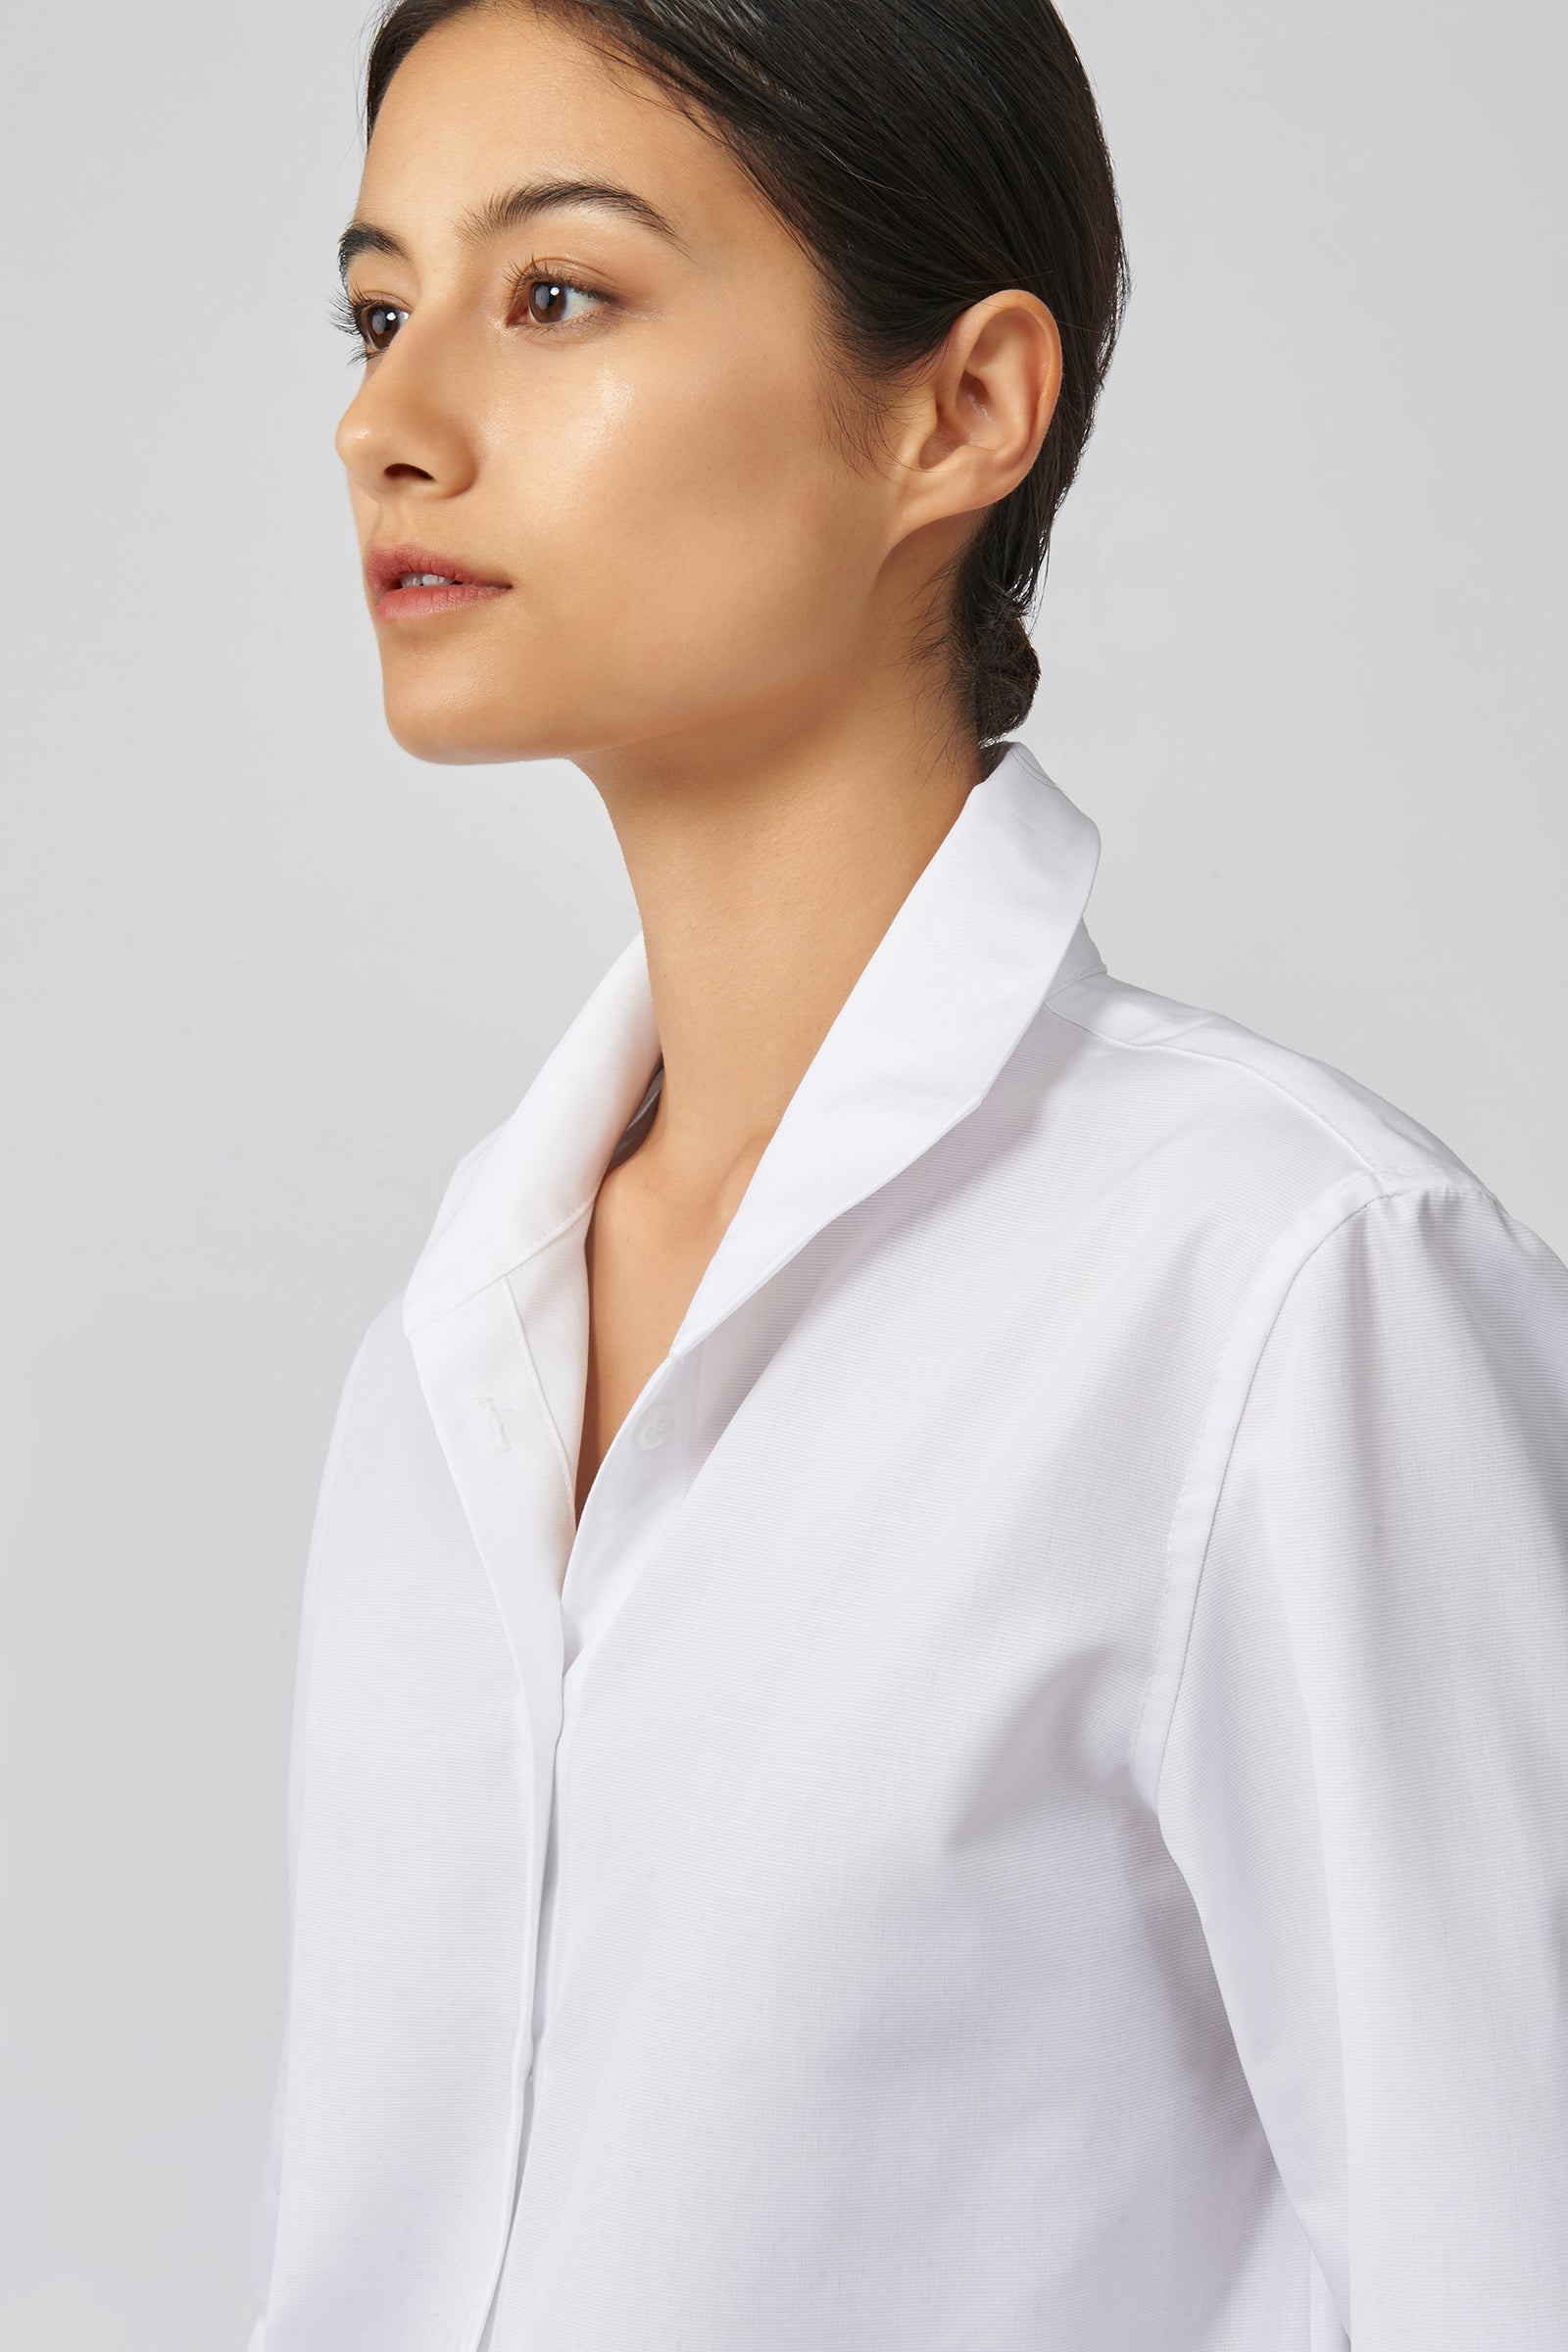 Kal Rieman Ginna Box Pleat Shirt in White Ottoman on Model Front Detail View